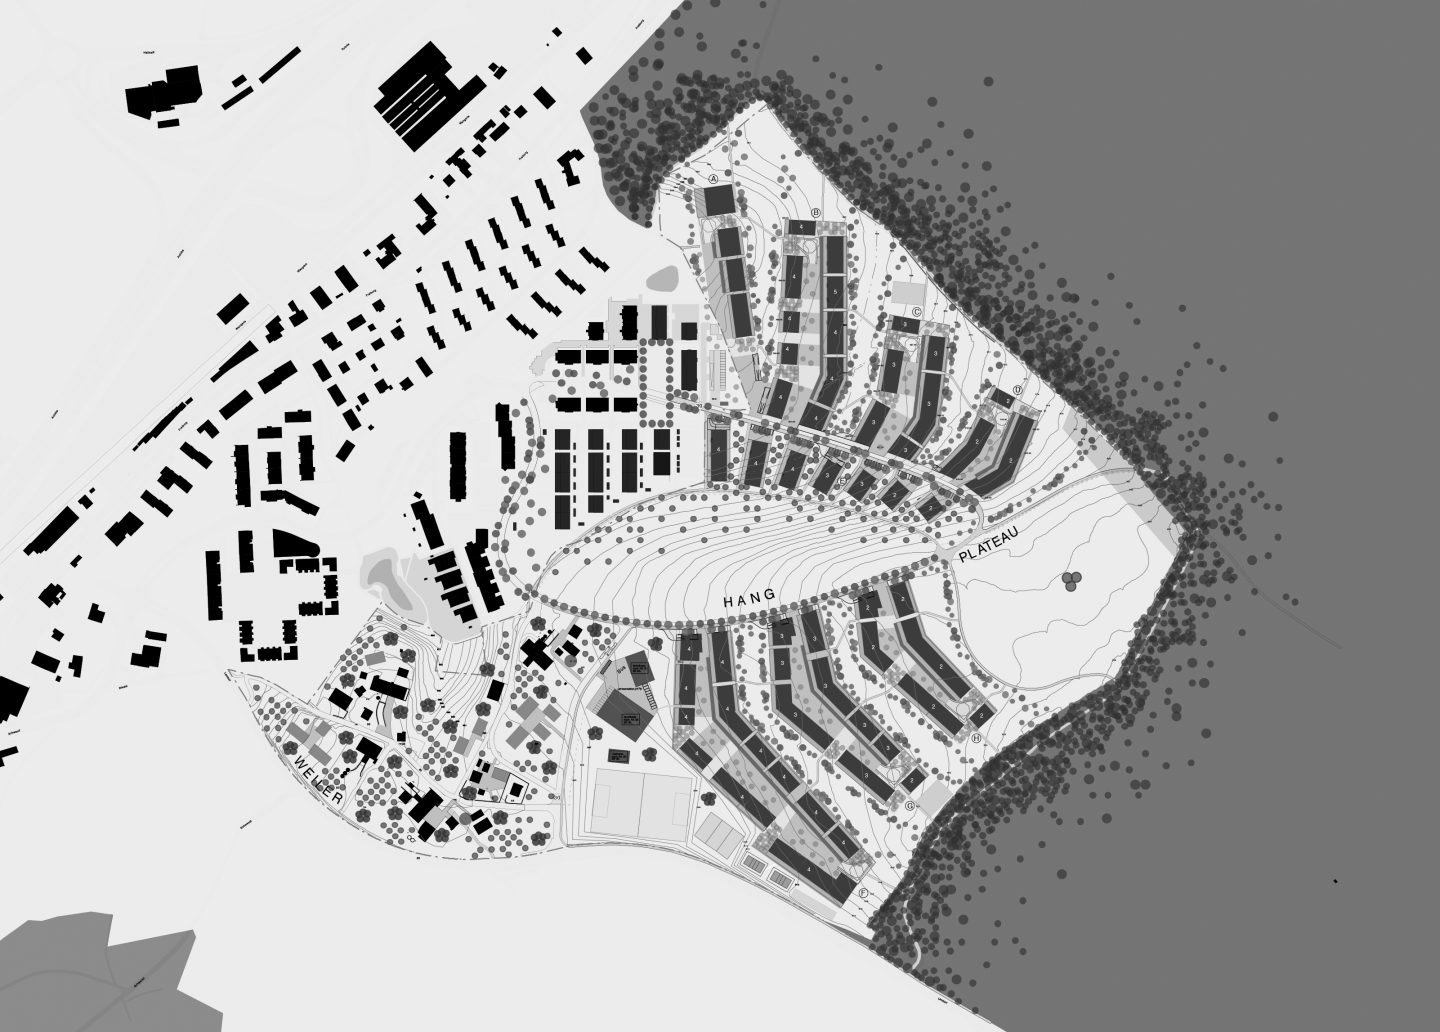 Ried Master Plan, Köniz BE. Hildebrand Studios AG, Architecture and Urban Design in Zurich, Switzerland